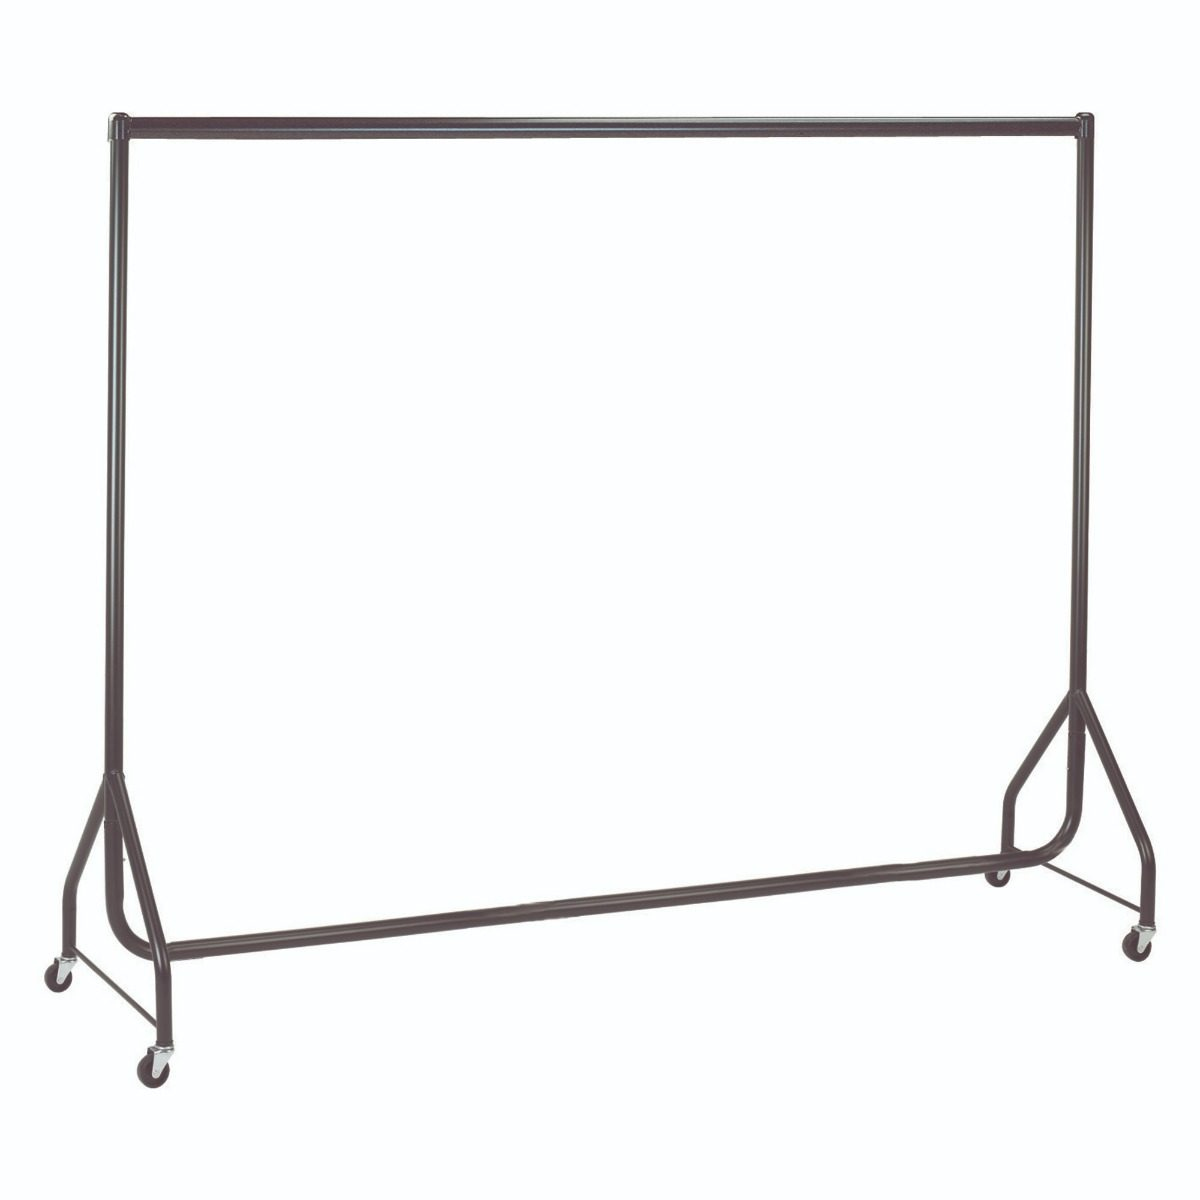 Black Heavy Duty Clothes Rails - L 6ft x H 5ft